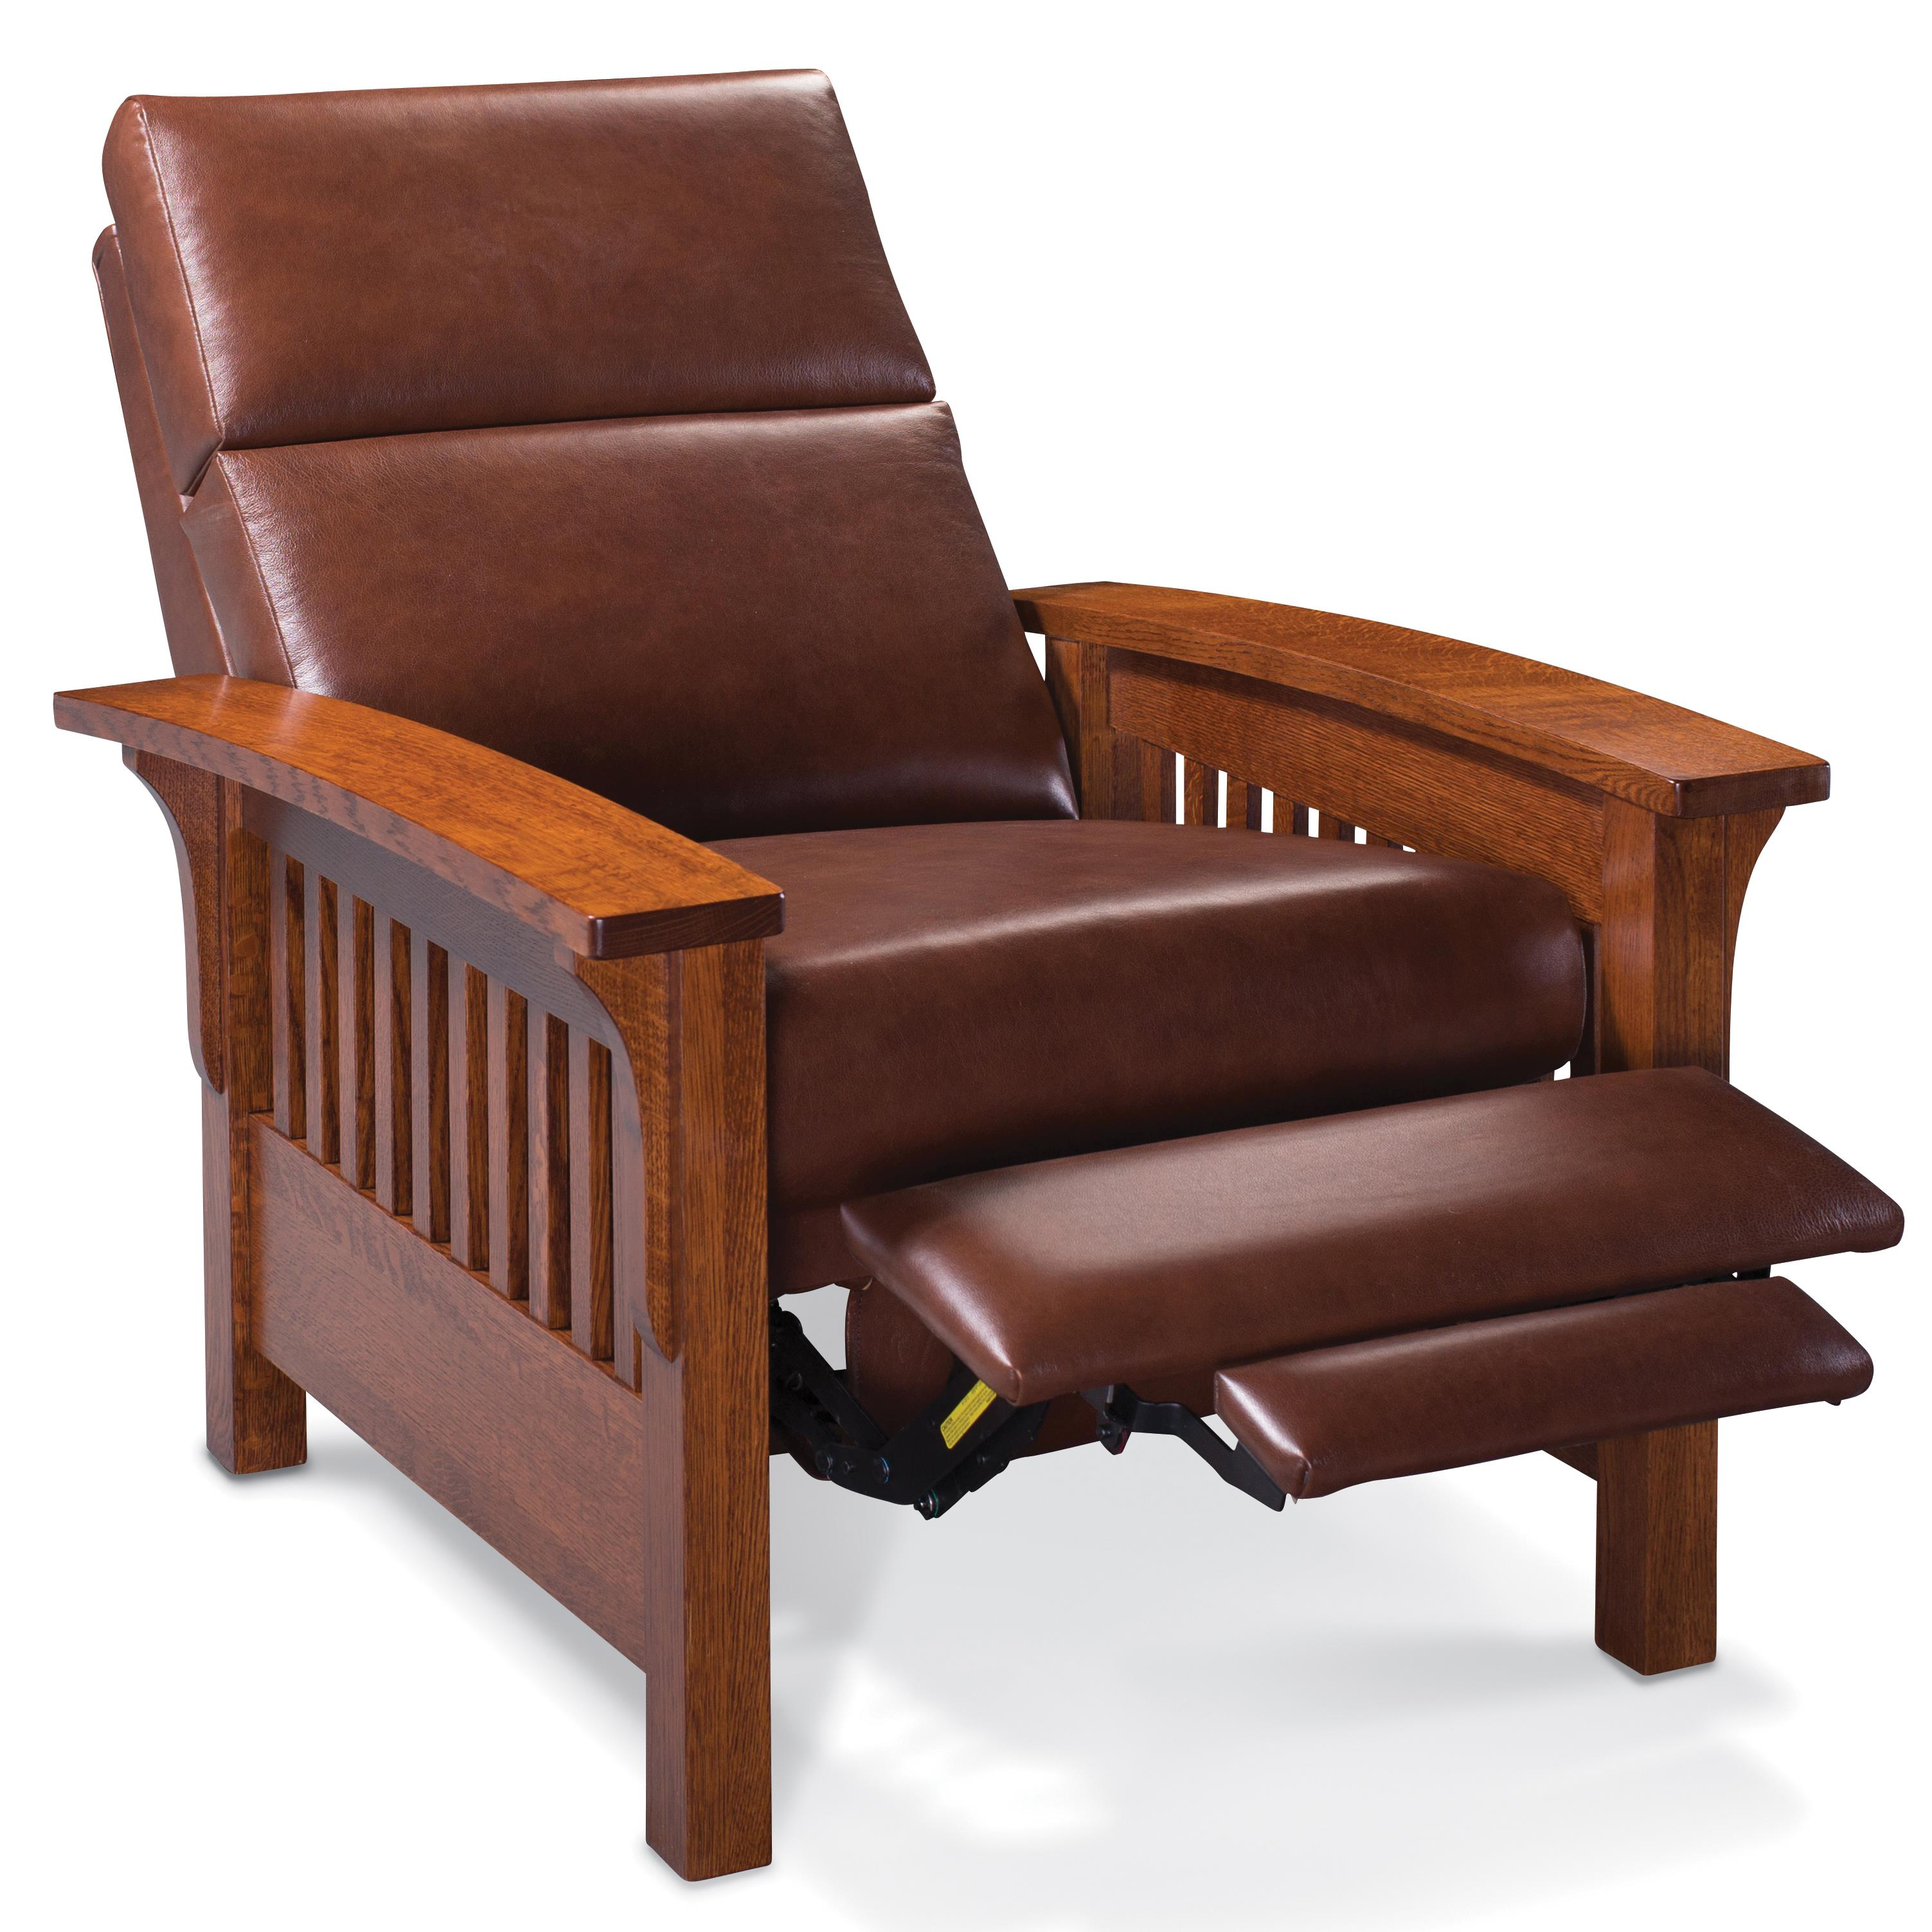 Wood Arm Recliner ~ Simply amish grand rapids xq ajhlr ld high leg recliner